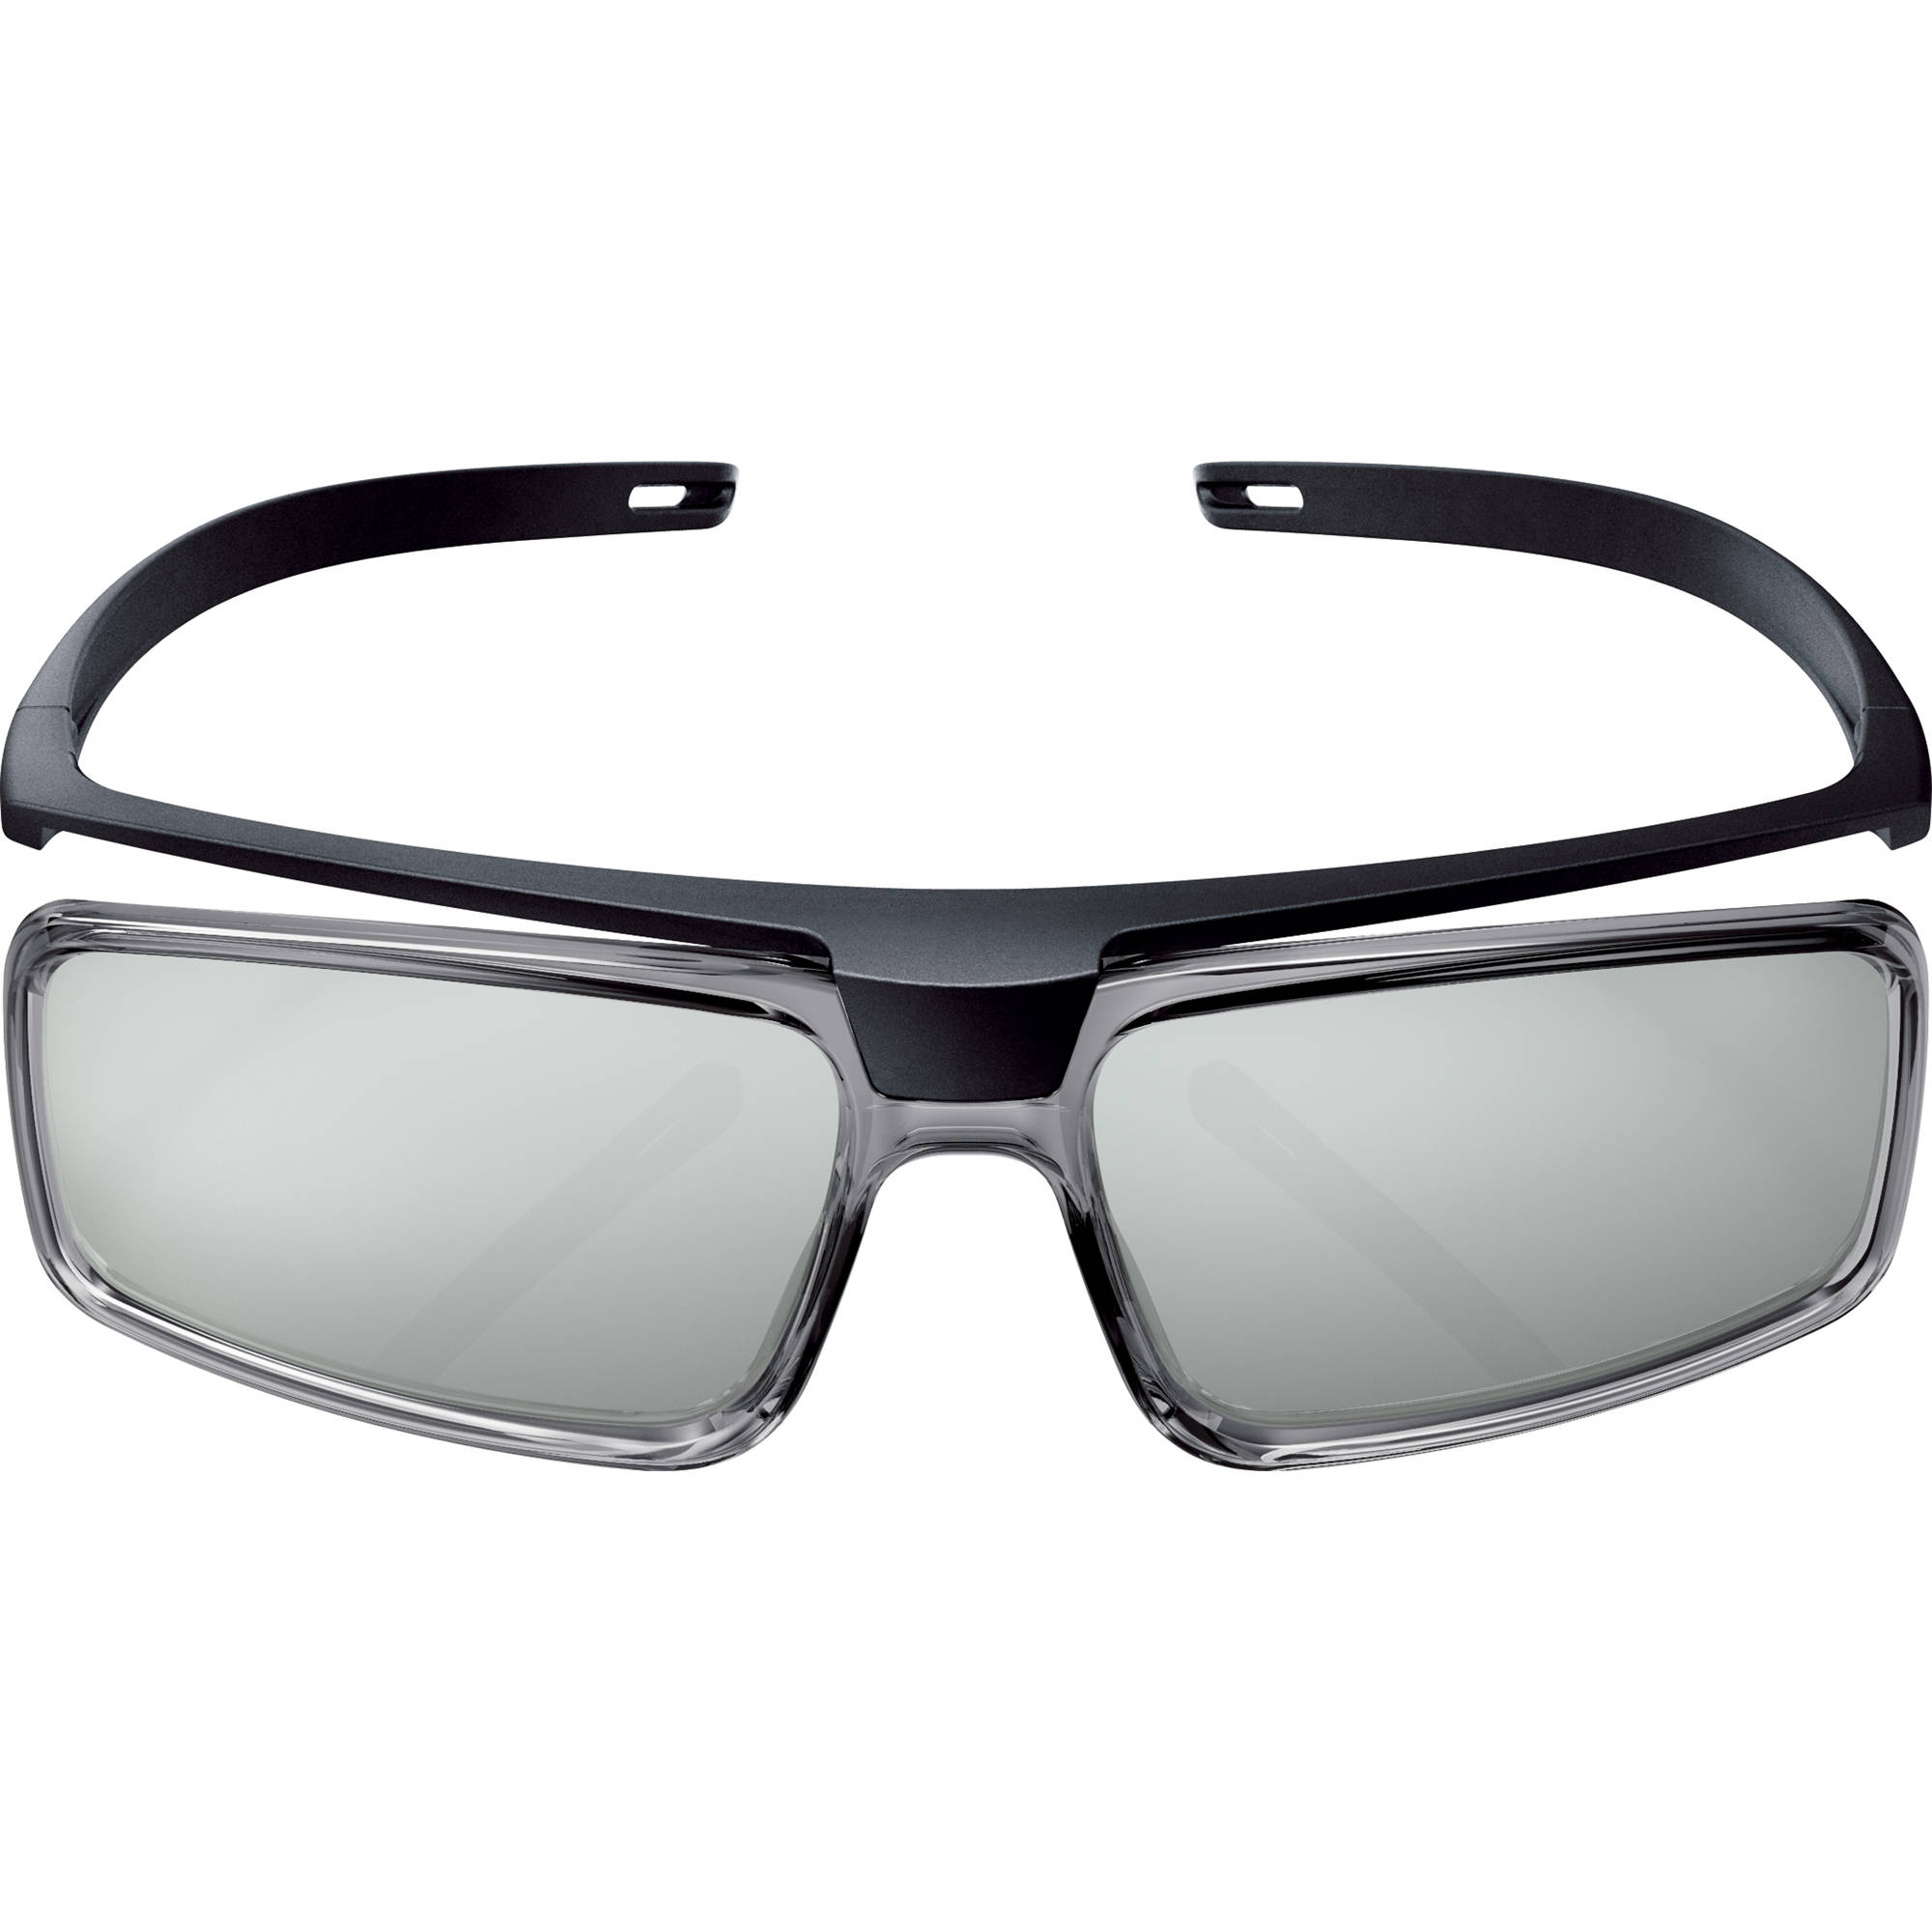 Sony Passive 3D Glasses For X900A, W802A And R550A TVs